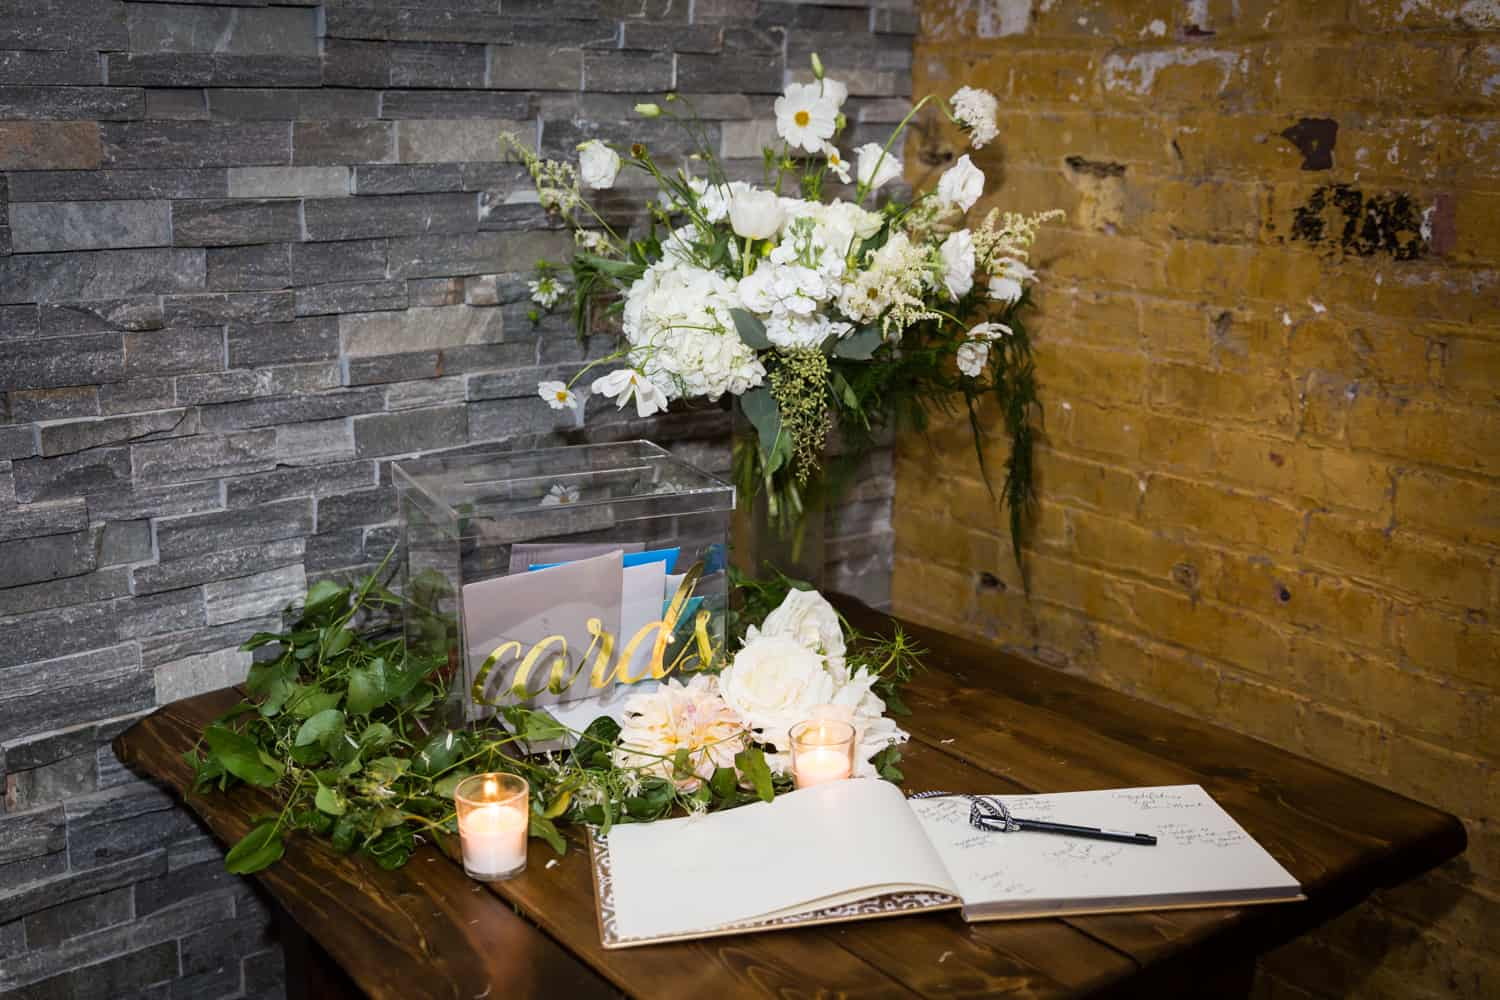 Table with bouquets of flowers and guest book